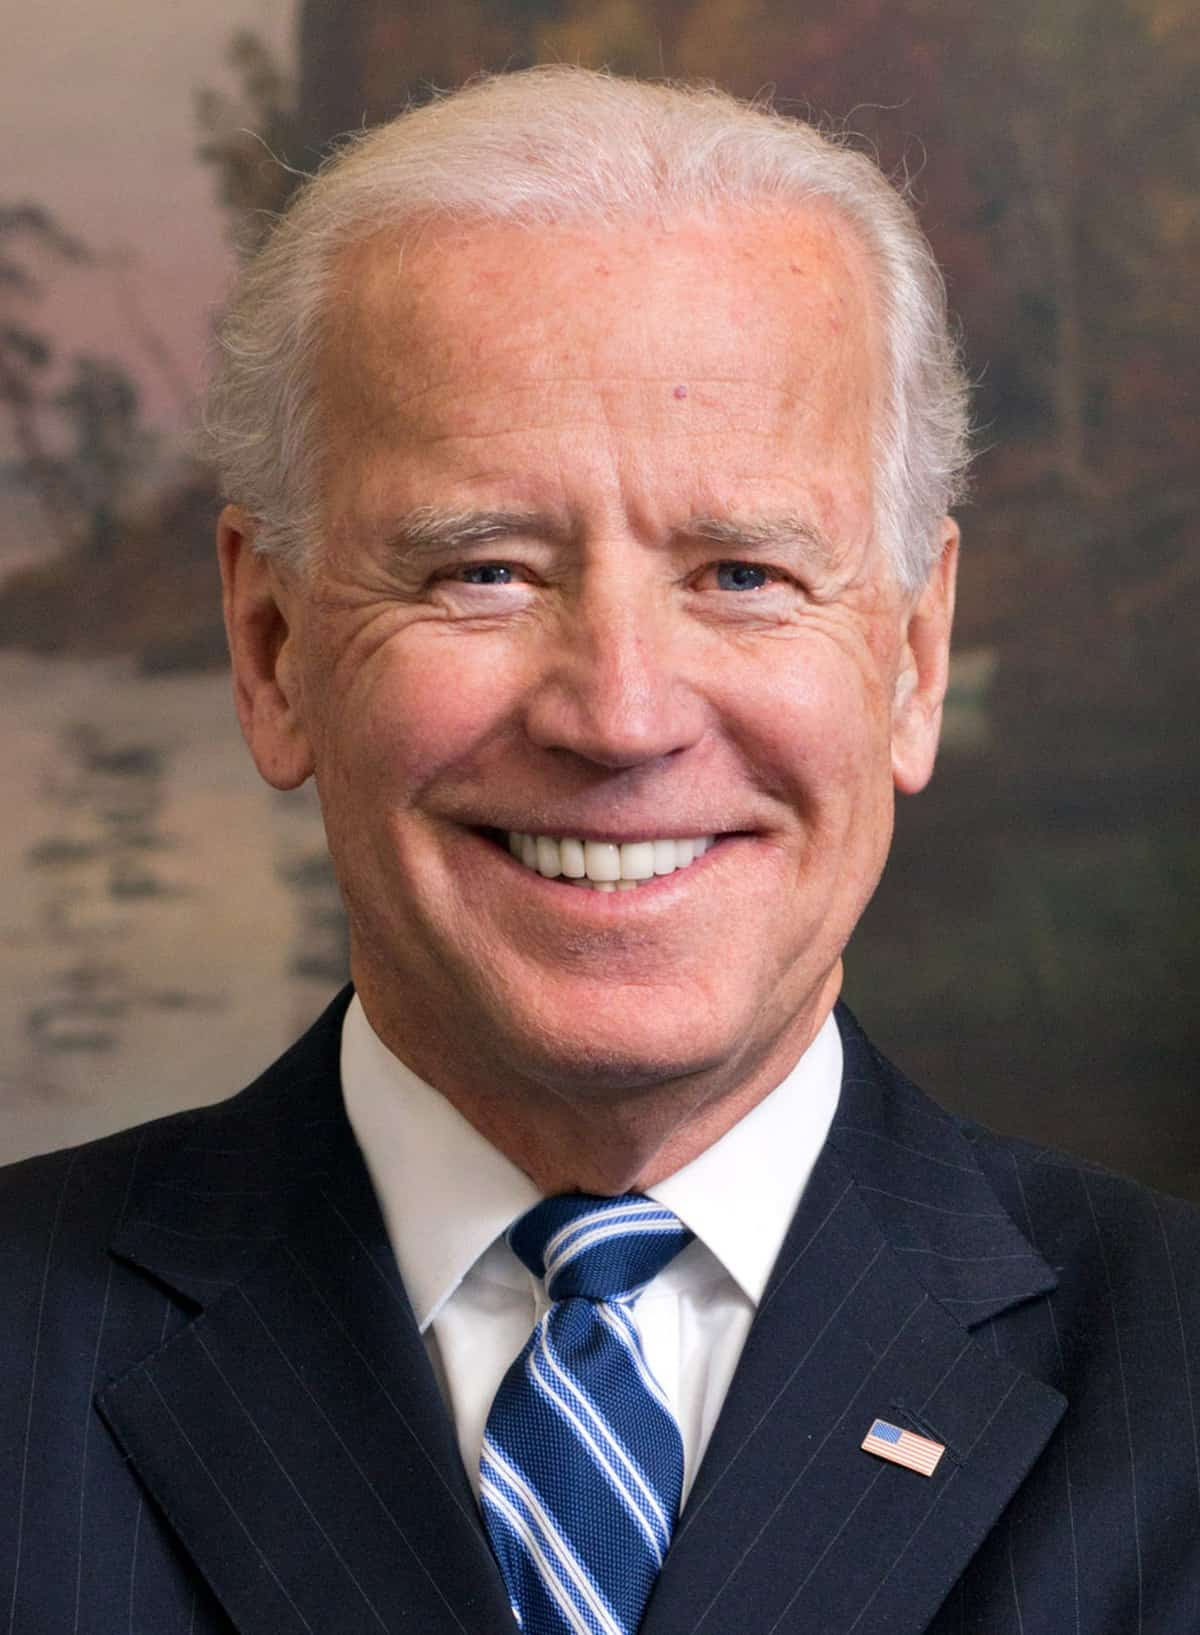 'I promise you as president, Islam is going to be treated like it should be': Joe Biden 4